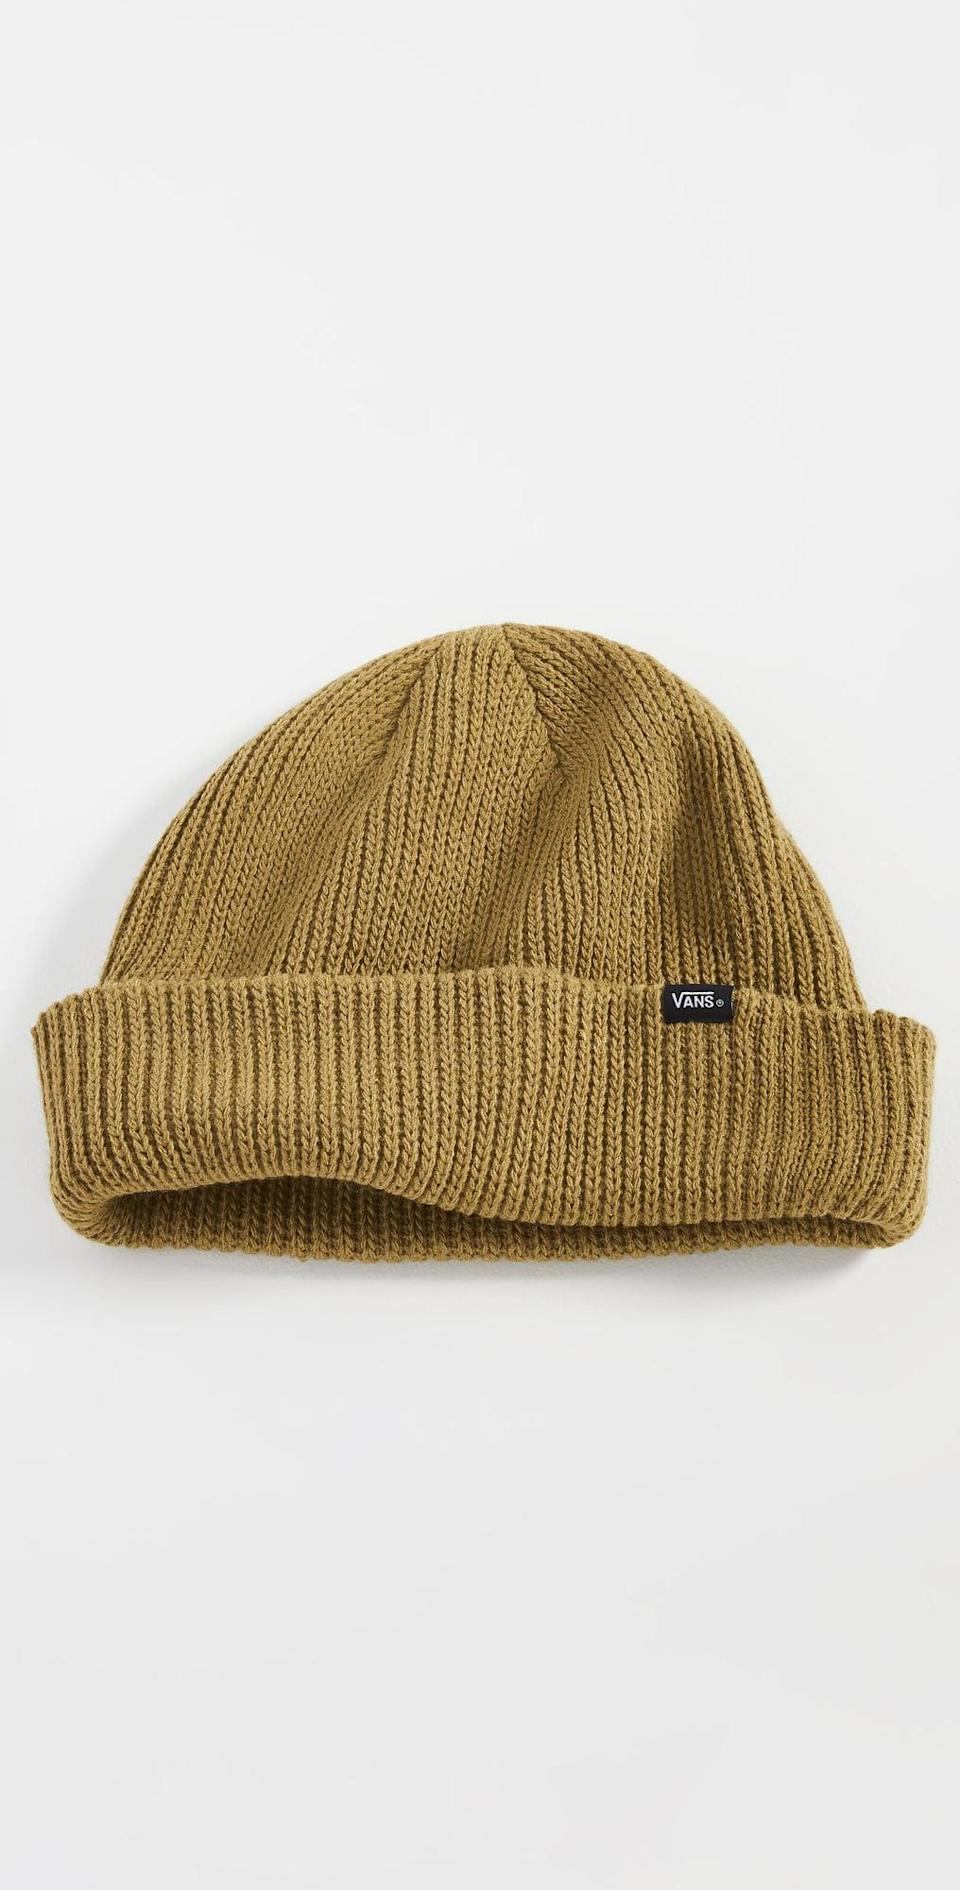 <p>You'll be grateful for this <span>Vans Core Basics Beanie</span> ($16) once the temperature starts to dip. It's a must in any cold-weather wardrobe, and it'll make a colorful addition to your collection.</p>